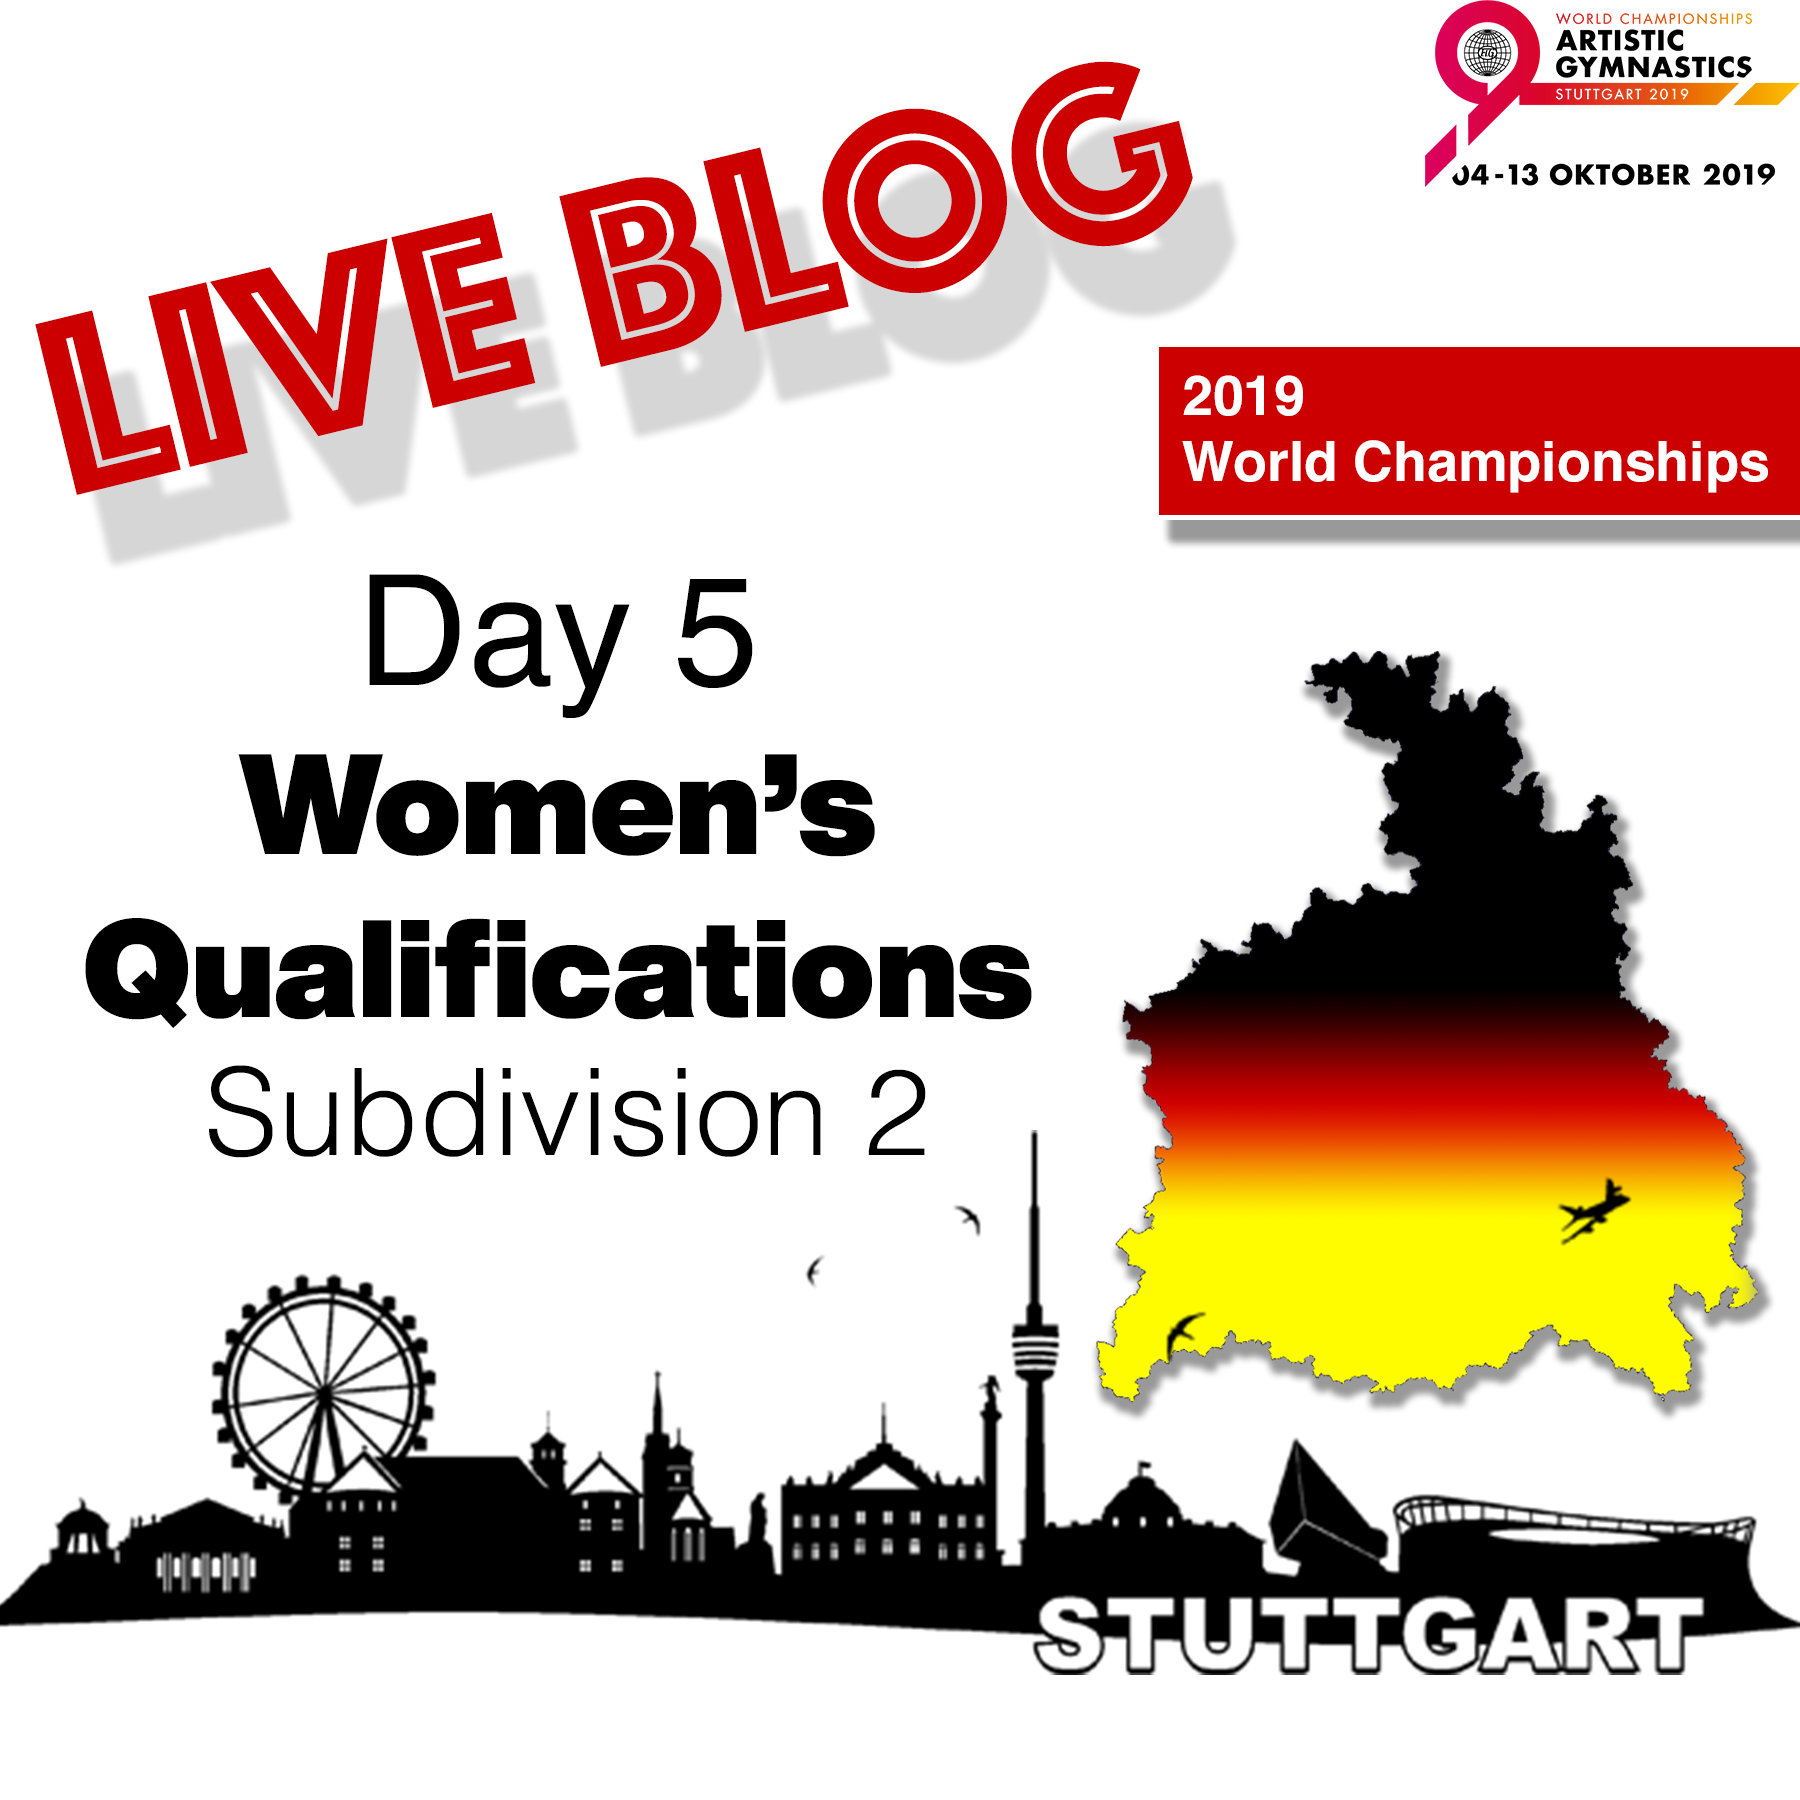 Live Blog: 2019 World Championships – WAG Qualifications – Sub Division 2, Oct. 4th